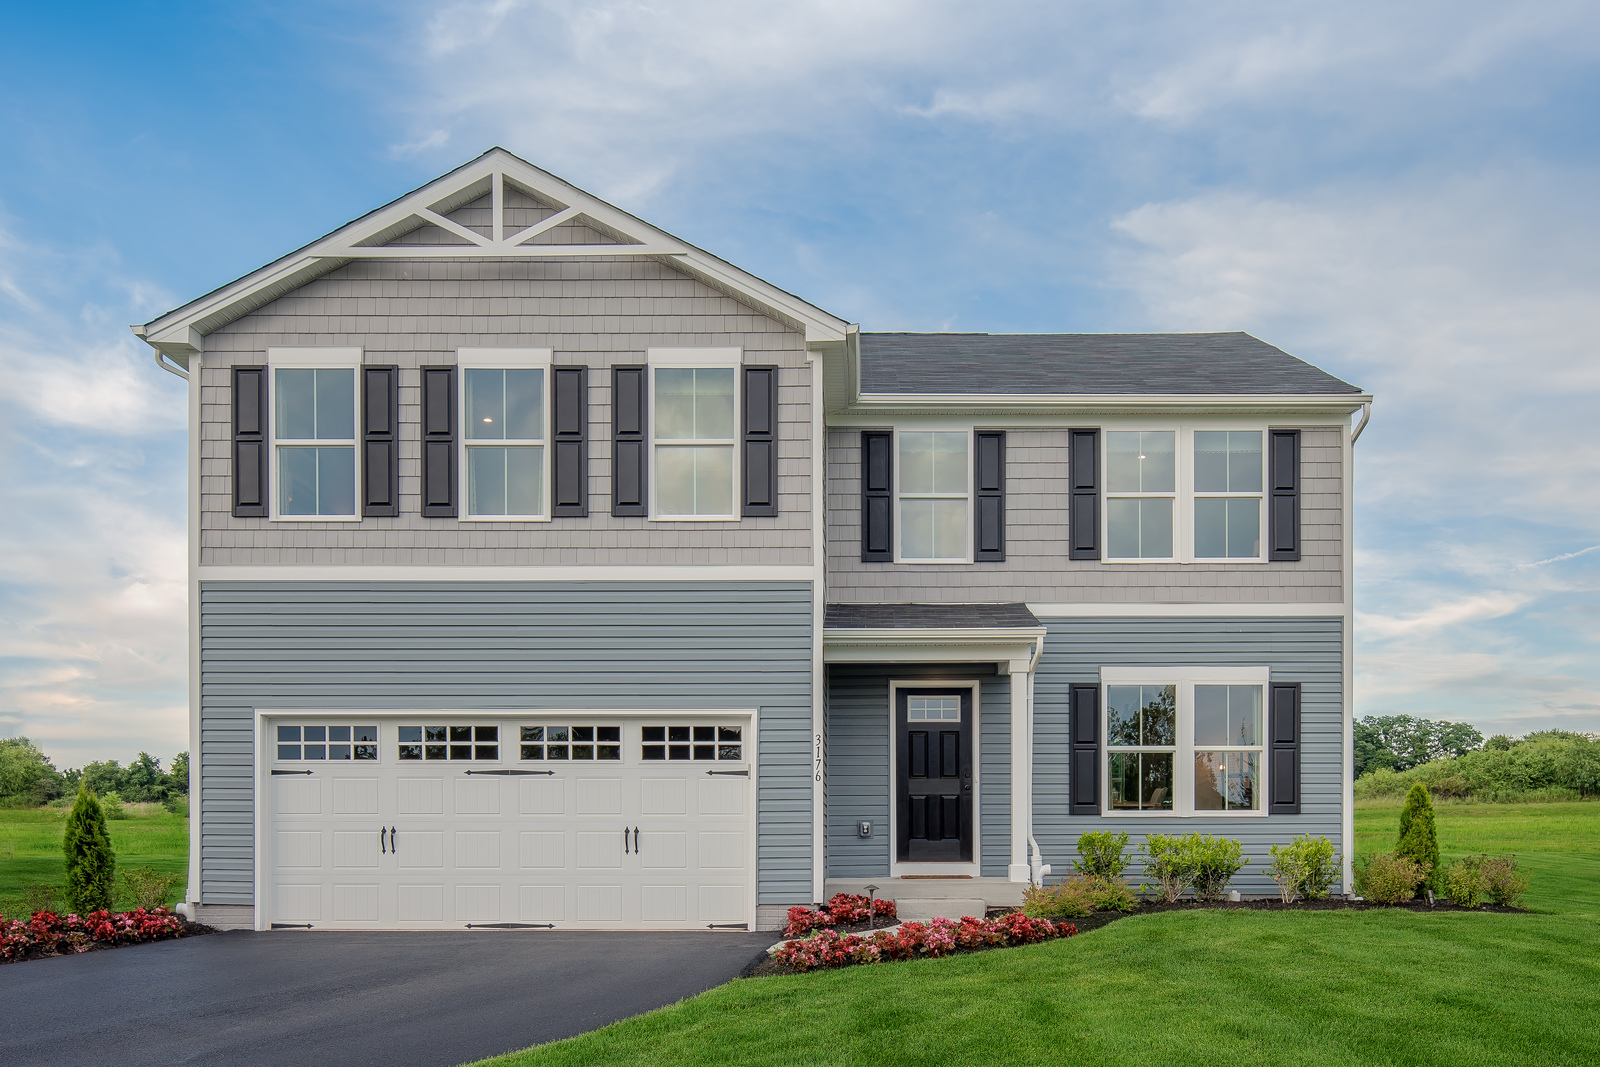 Plan 2203 at Villages of Sterling Green